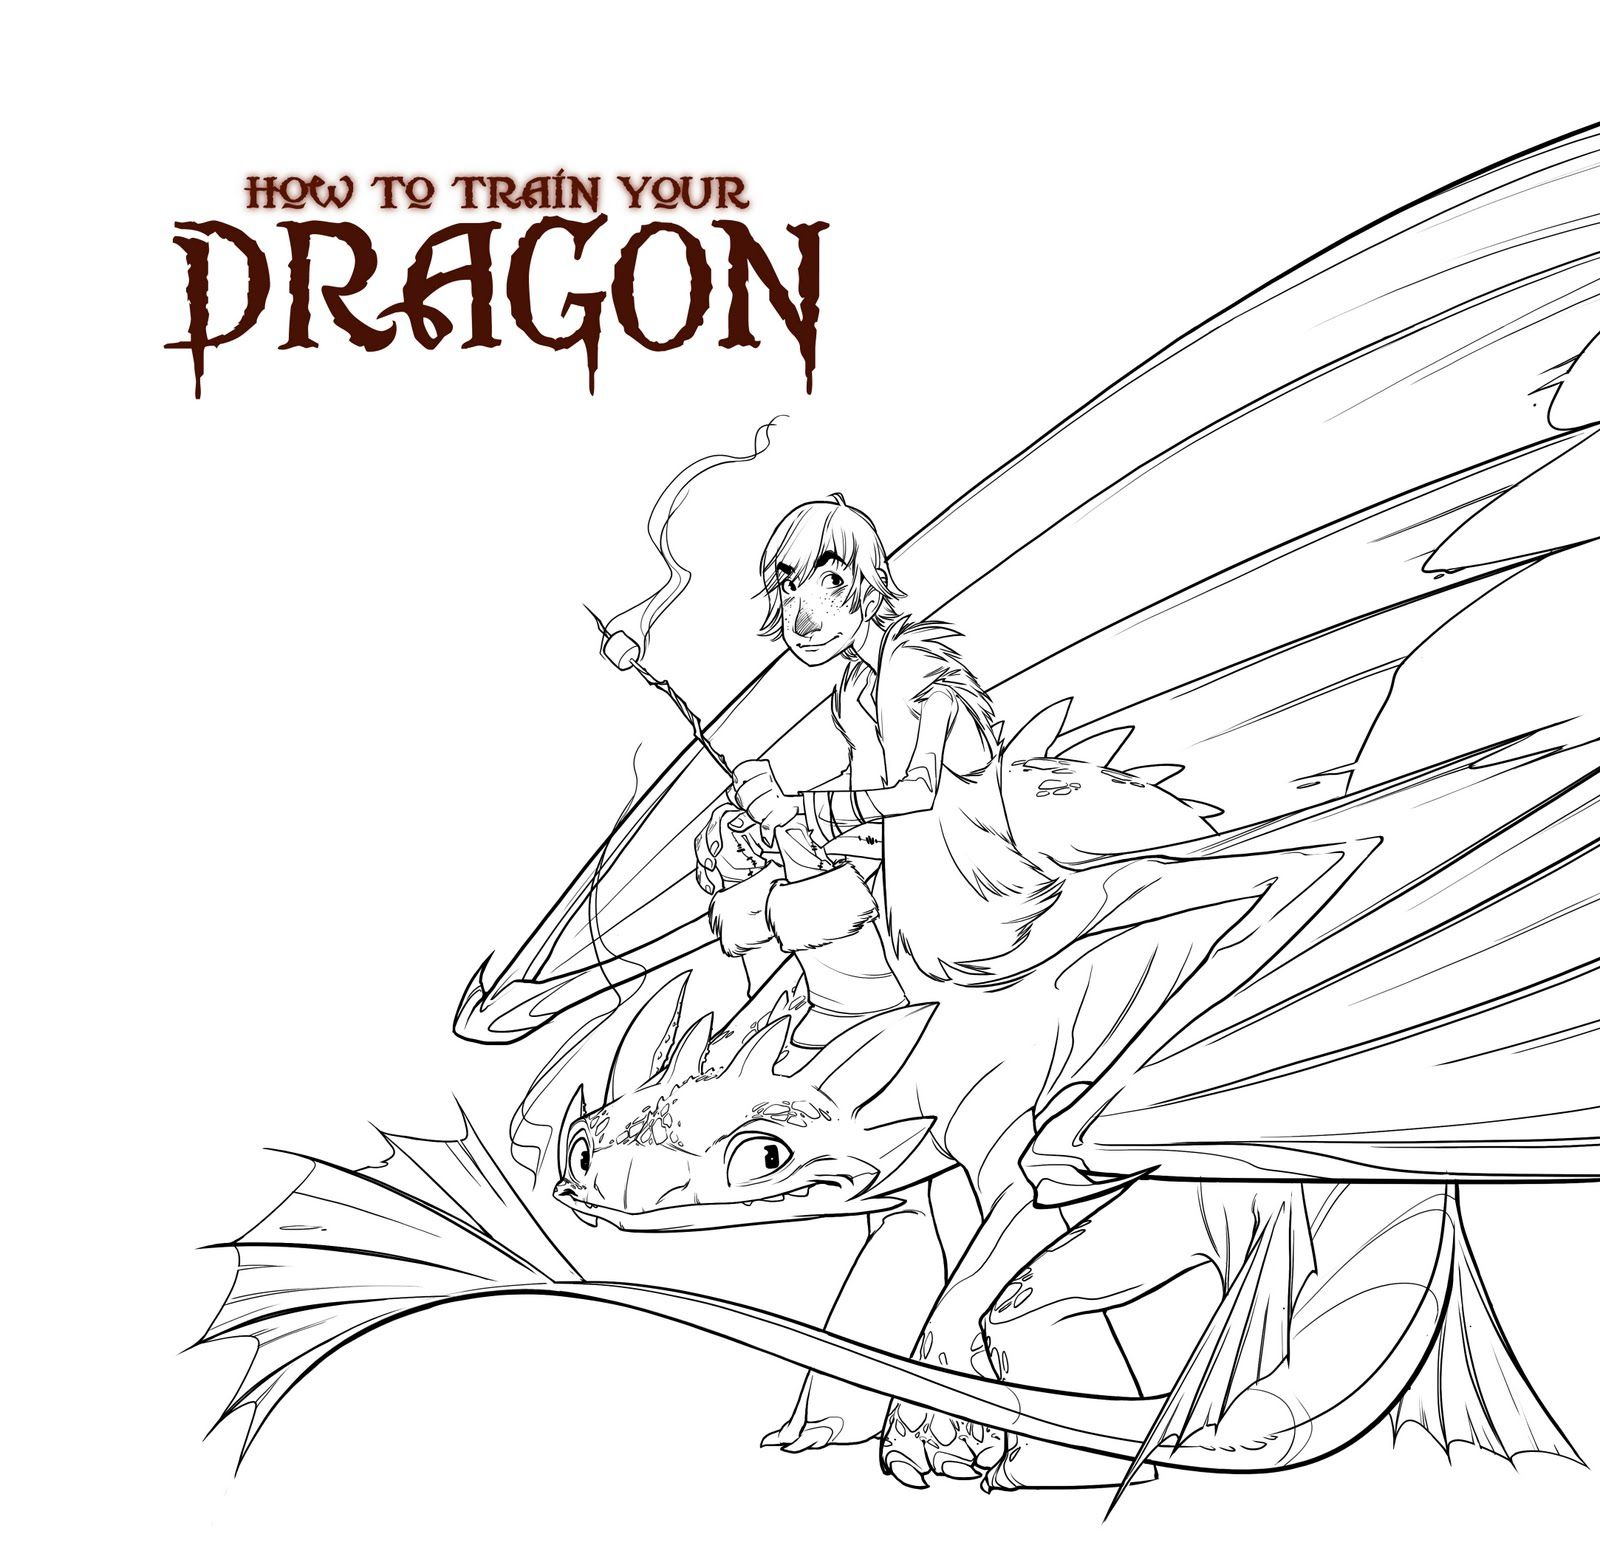 download how to train your dragon printable coloring pages for kids ...